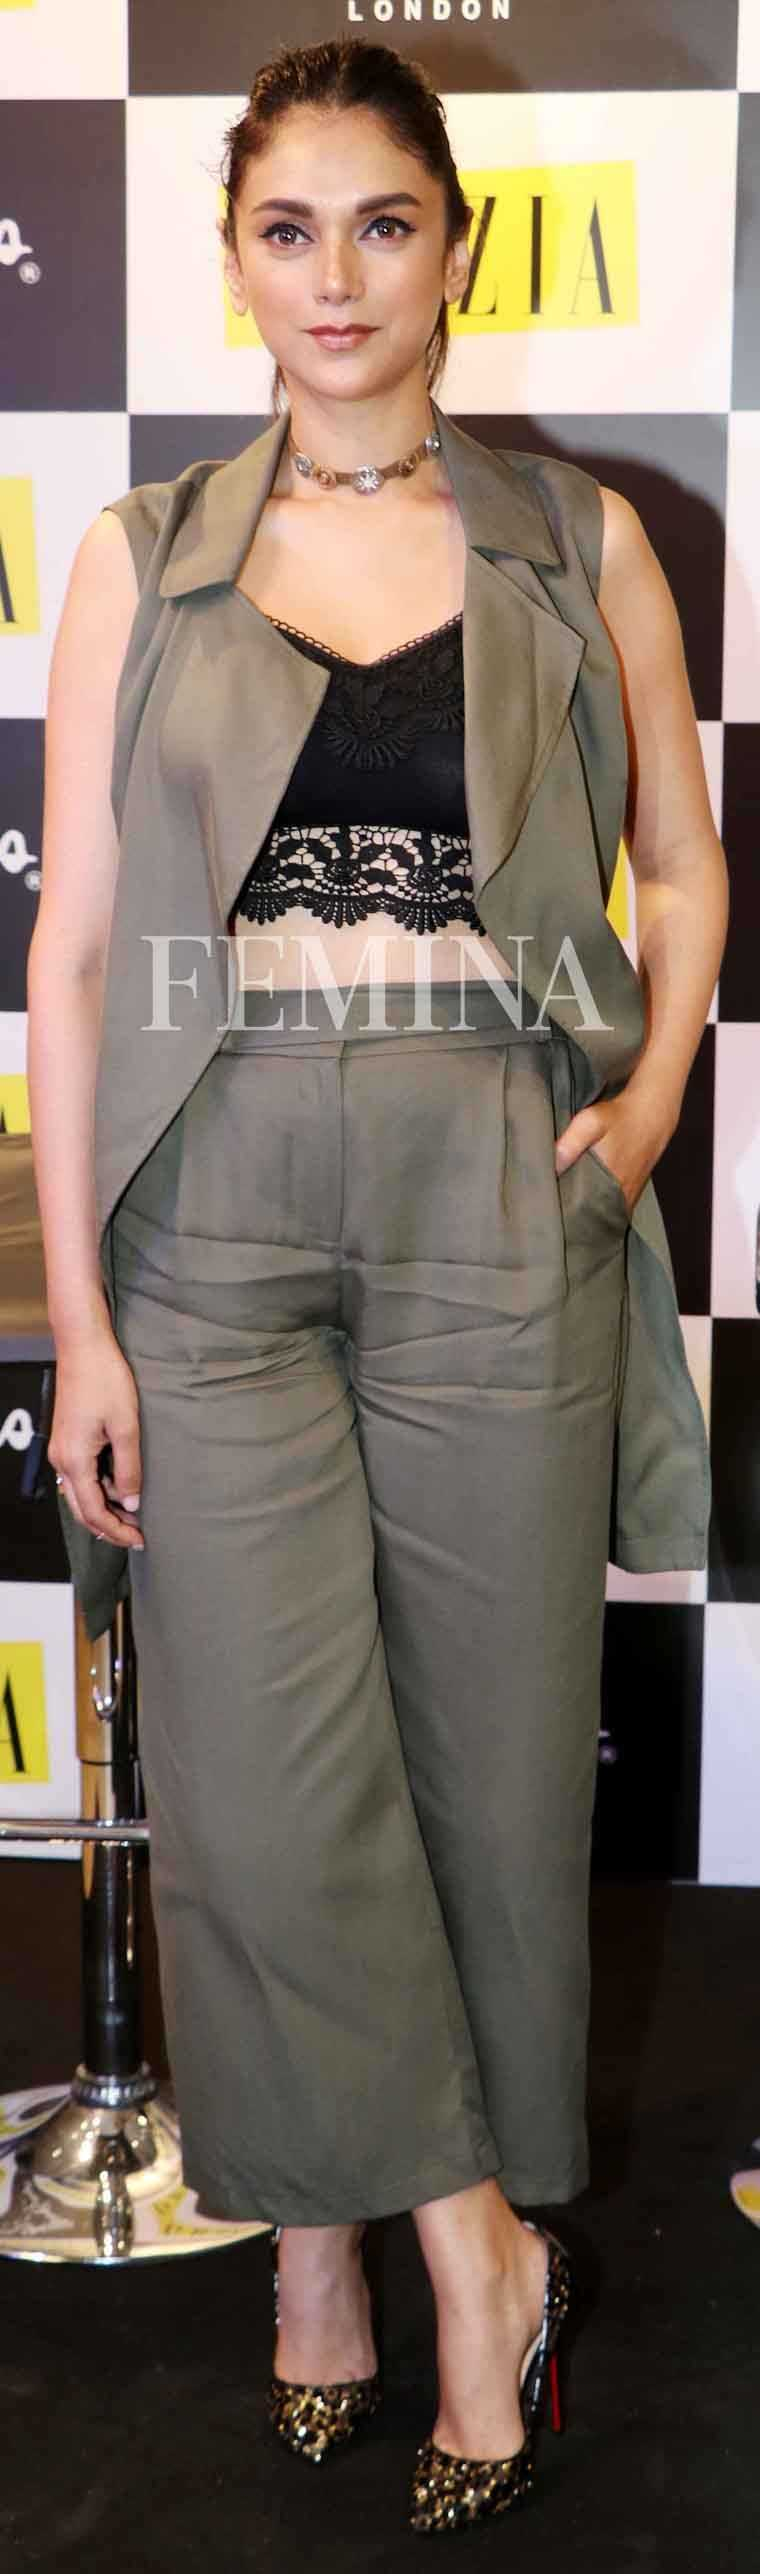 ADITI RAO HYDARI A metallic Topshop choker added some shine to Aditi's safari-chic Marks & Spencer and Zara separates.